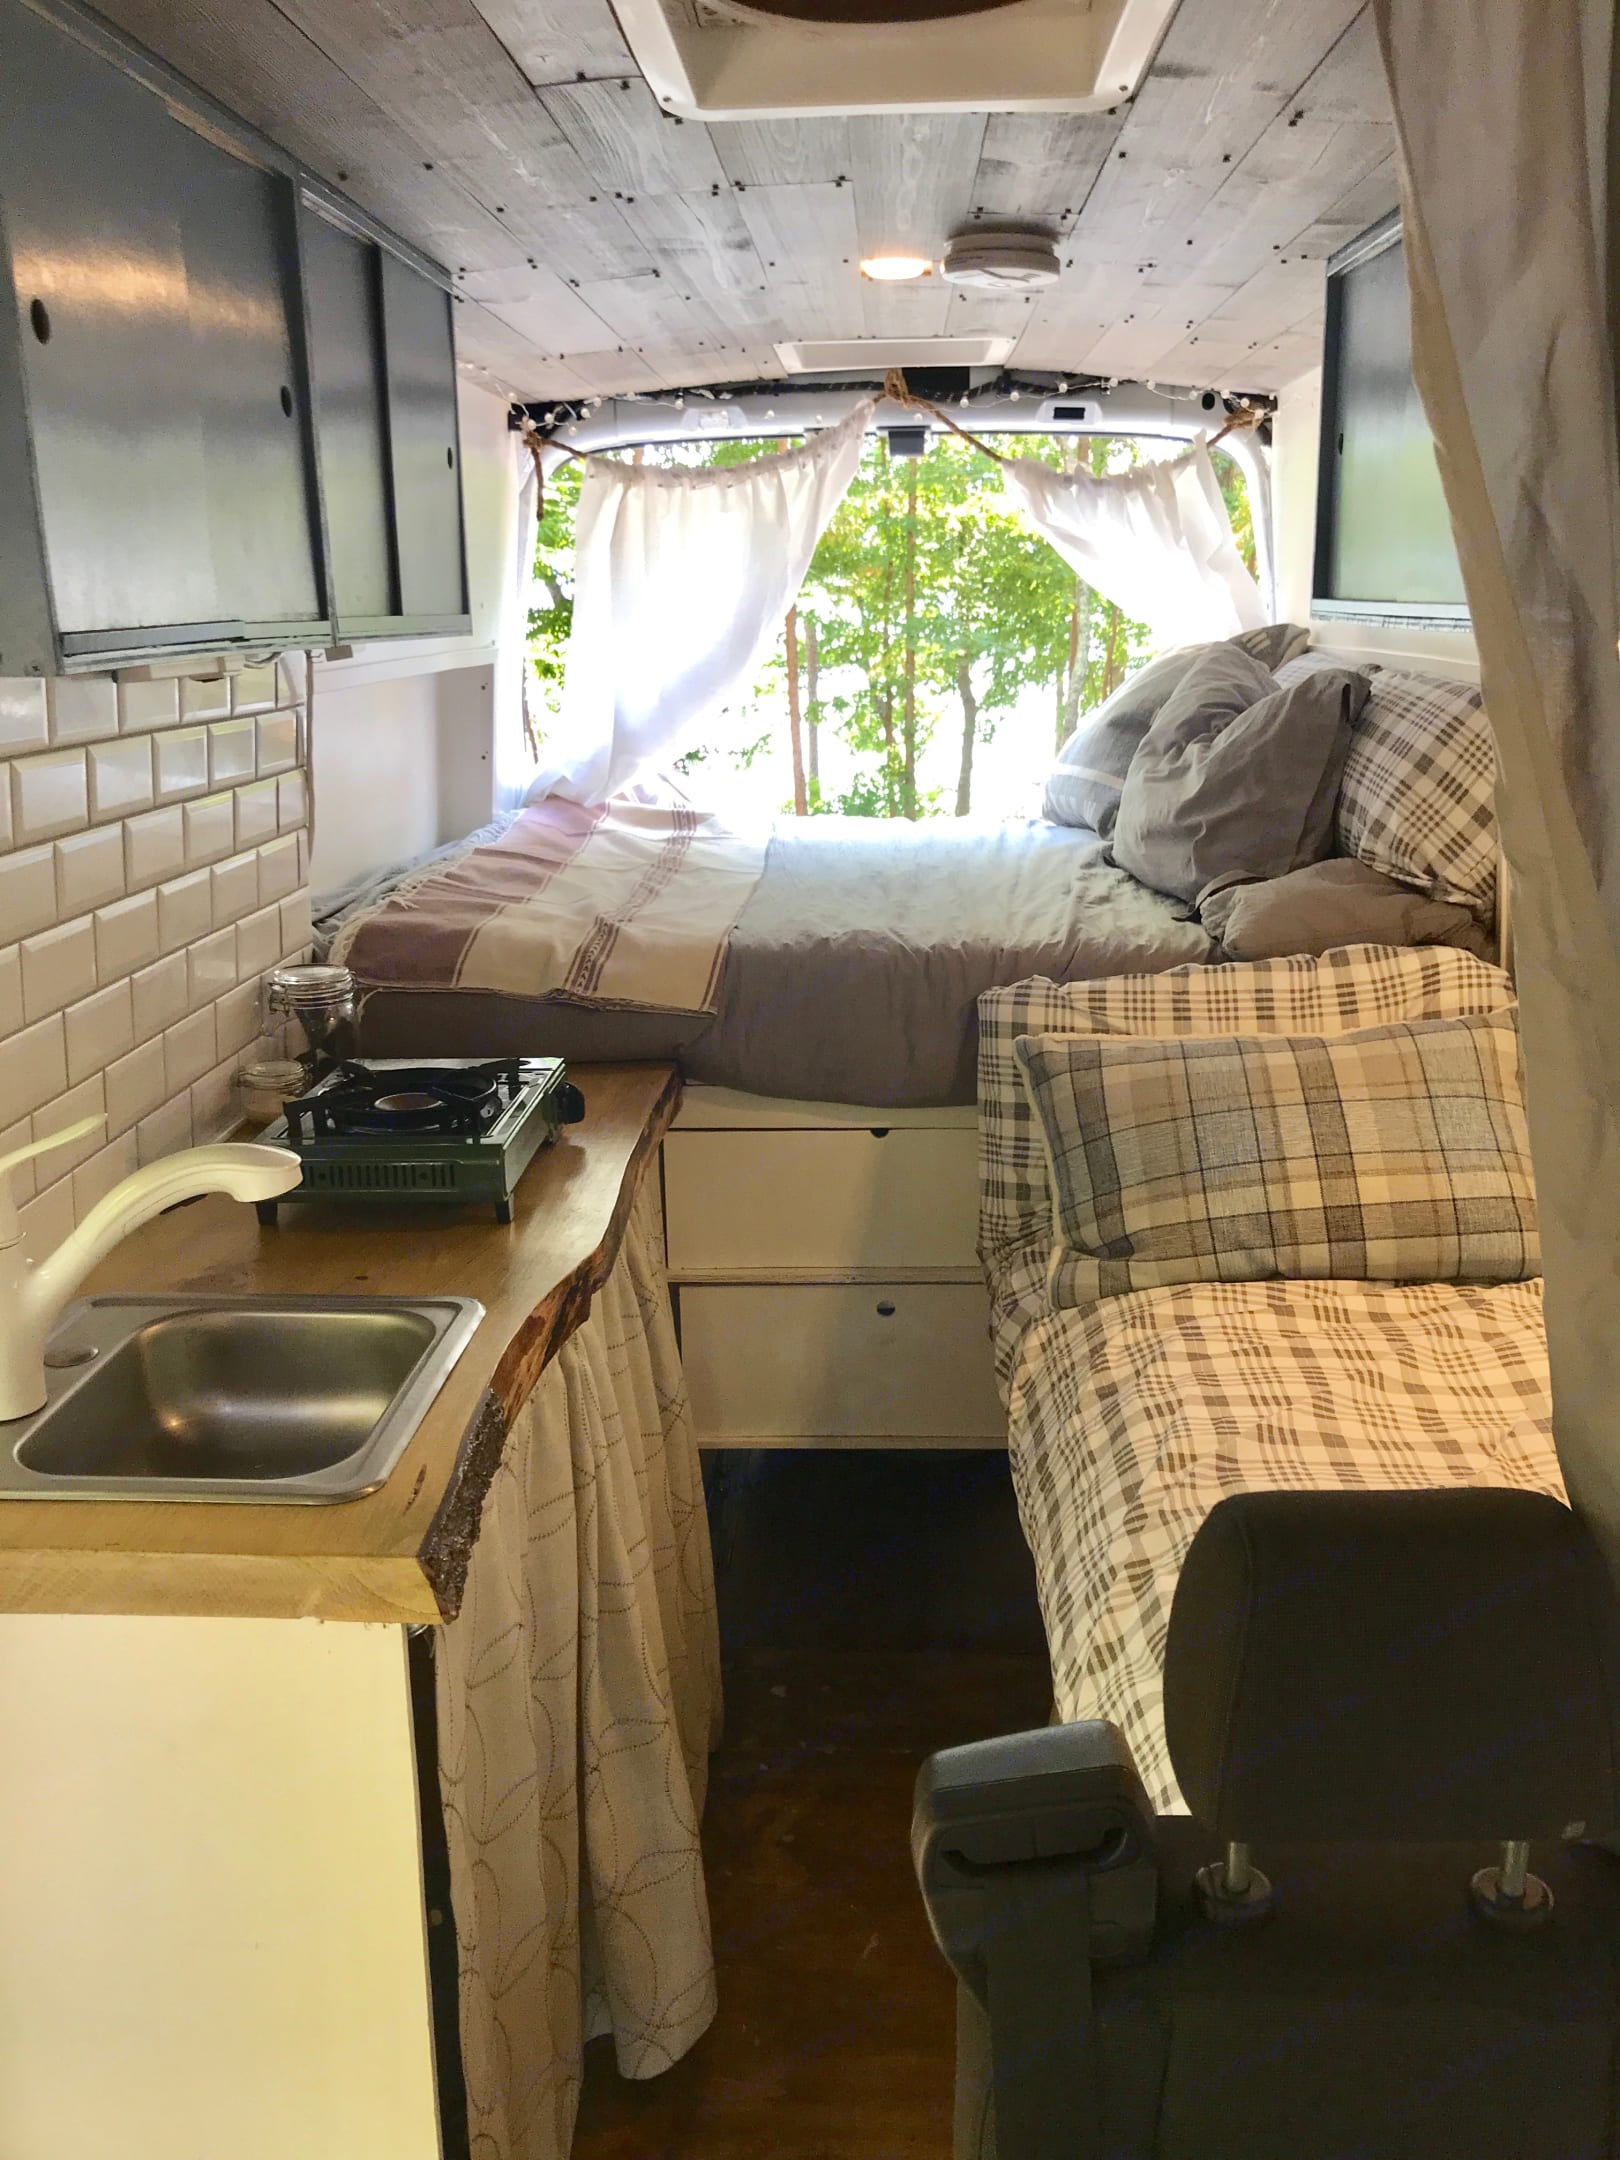 Fresh linens included. Ford TransitCustom 2017